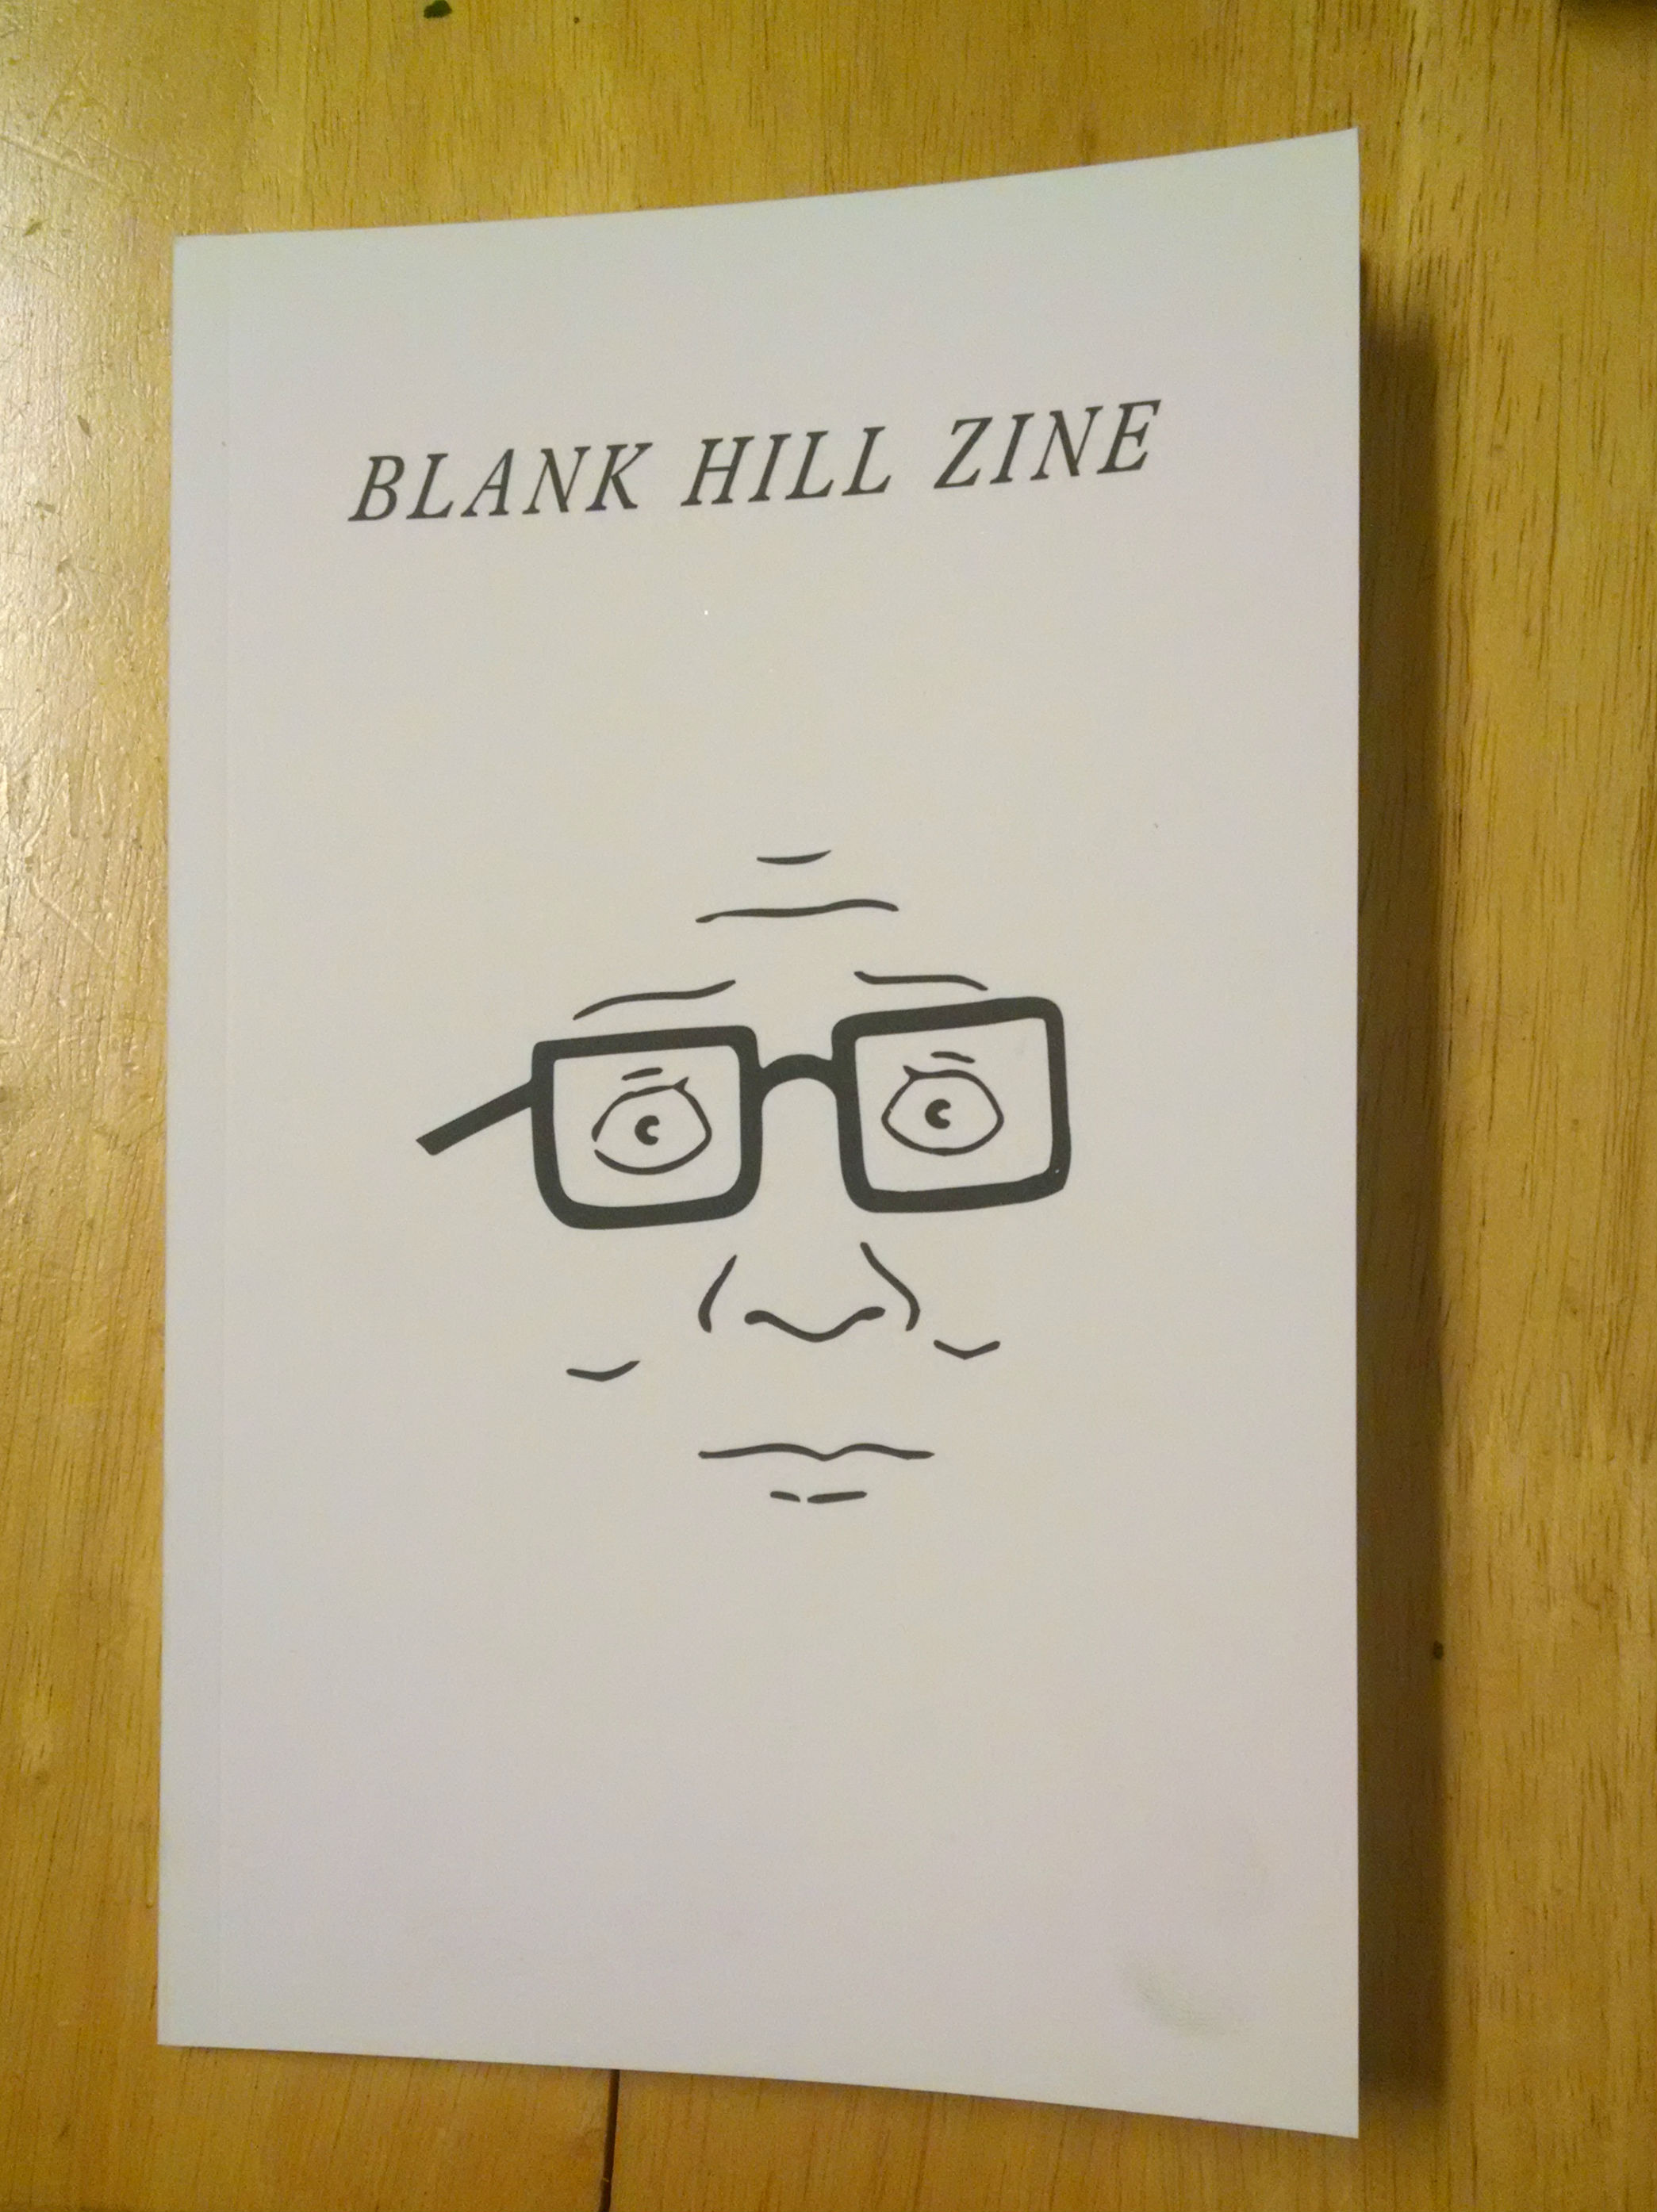 This might be my favorite acquisition of the festival. When I saw it, I knew I had to have it. Contributors put Hank Hill's face into all kinds of other illustrations.